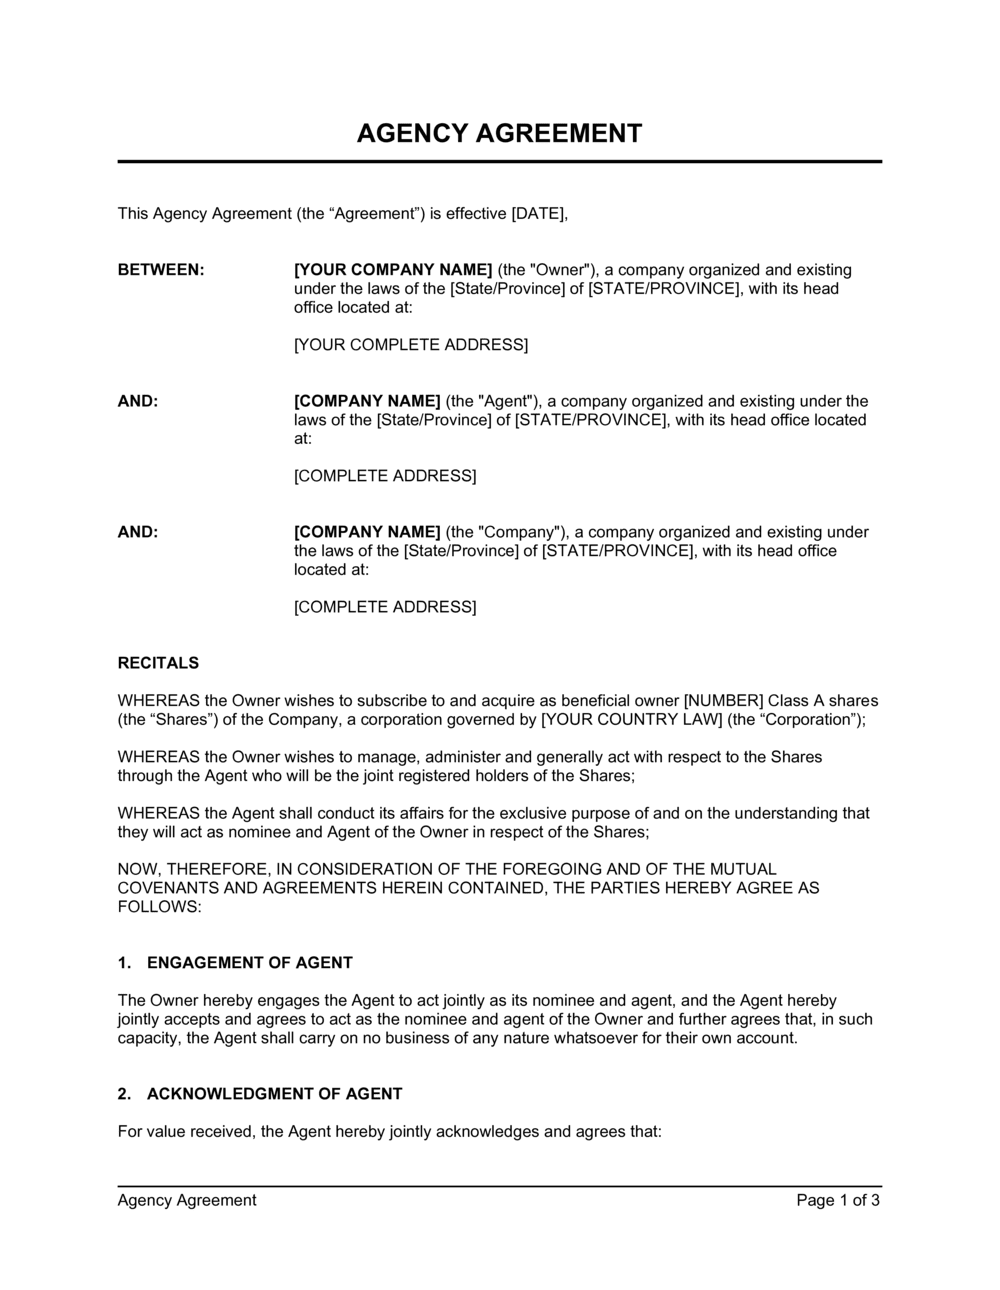 Business-in-a-Box's Agency Agreement Corporate Duties Template